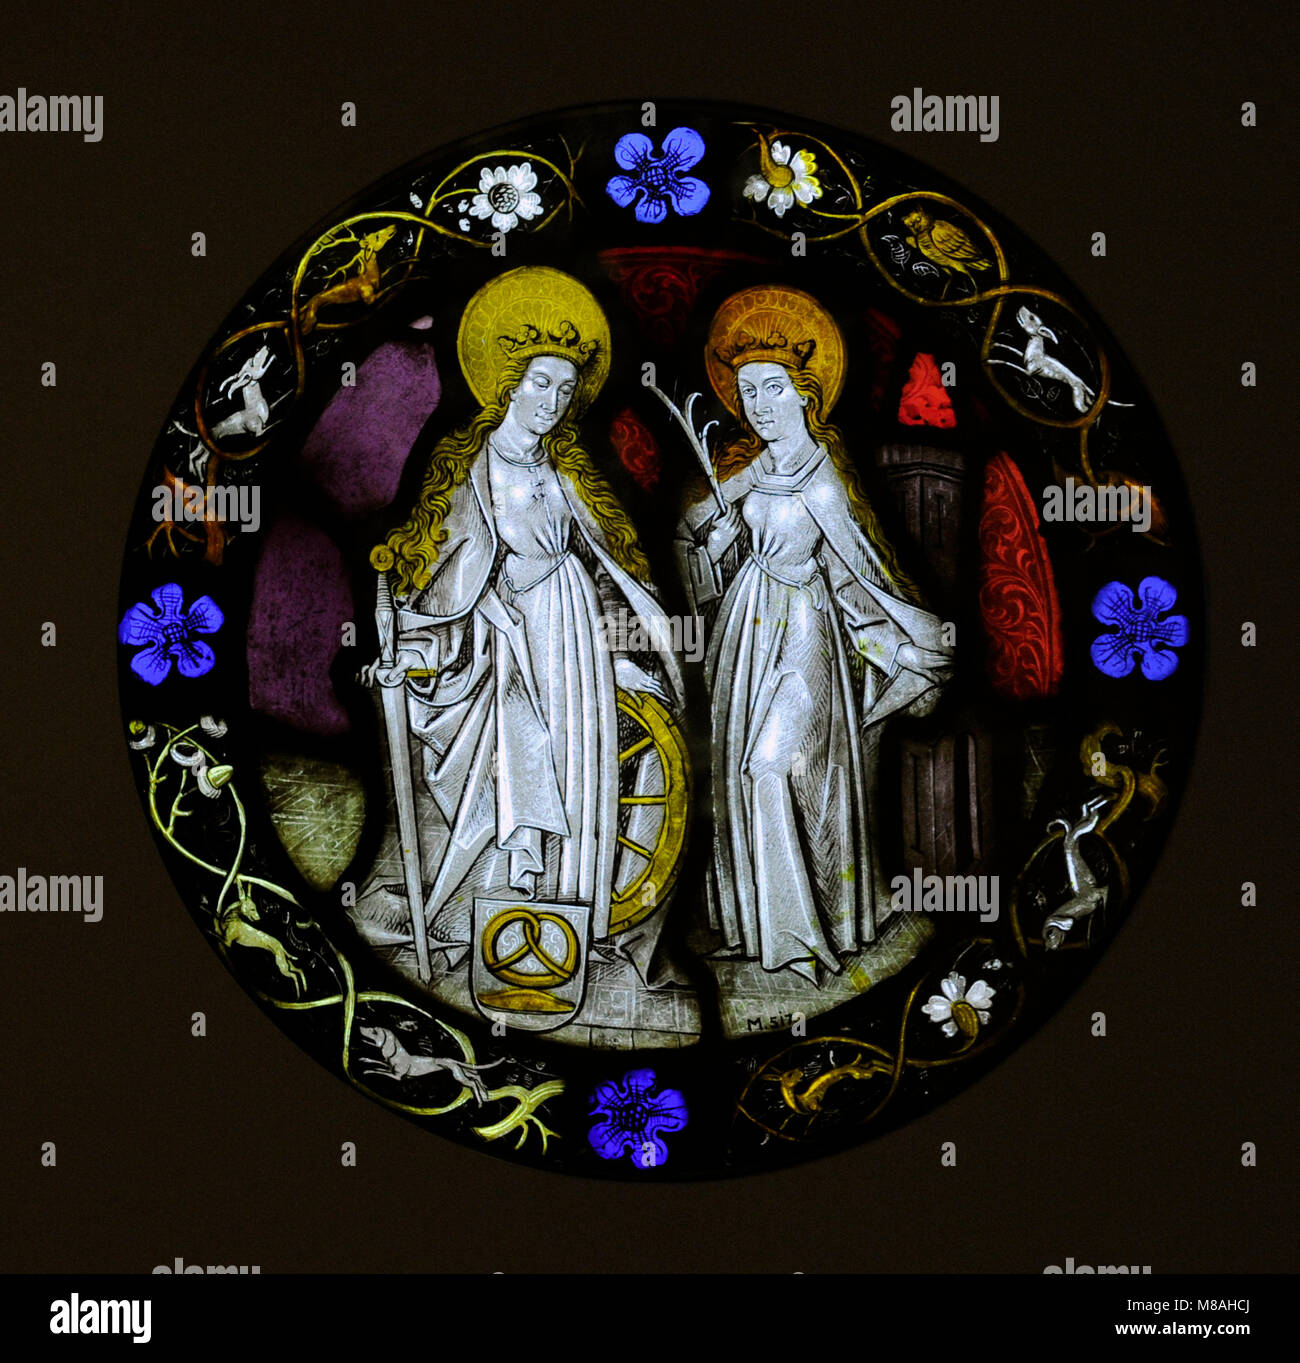 Saint Catherine and Saint Barbara. Cologne, late 15th century. Germany, Stained glass. Schnütgen Museum. Cologne, - Stock Image